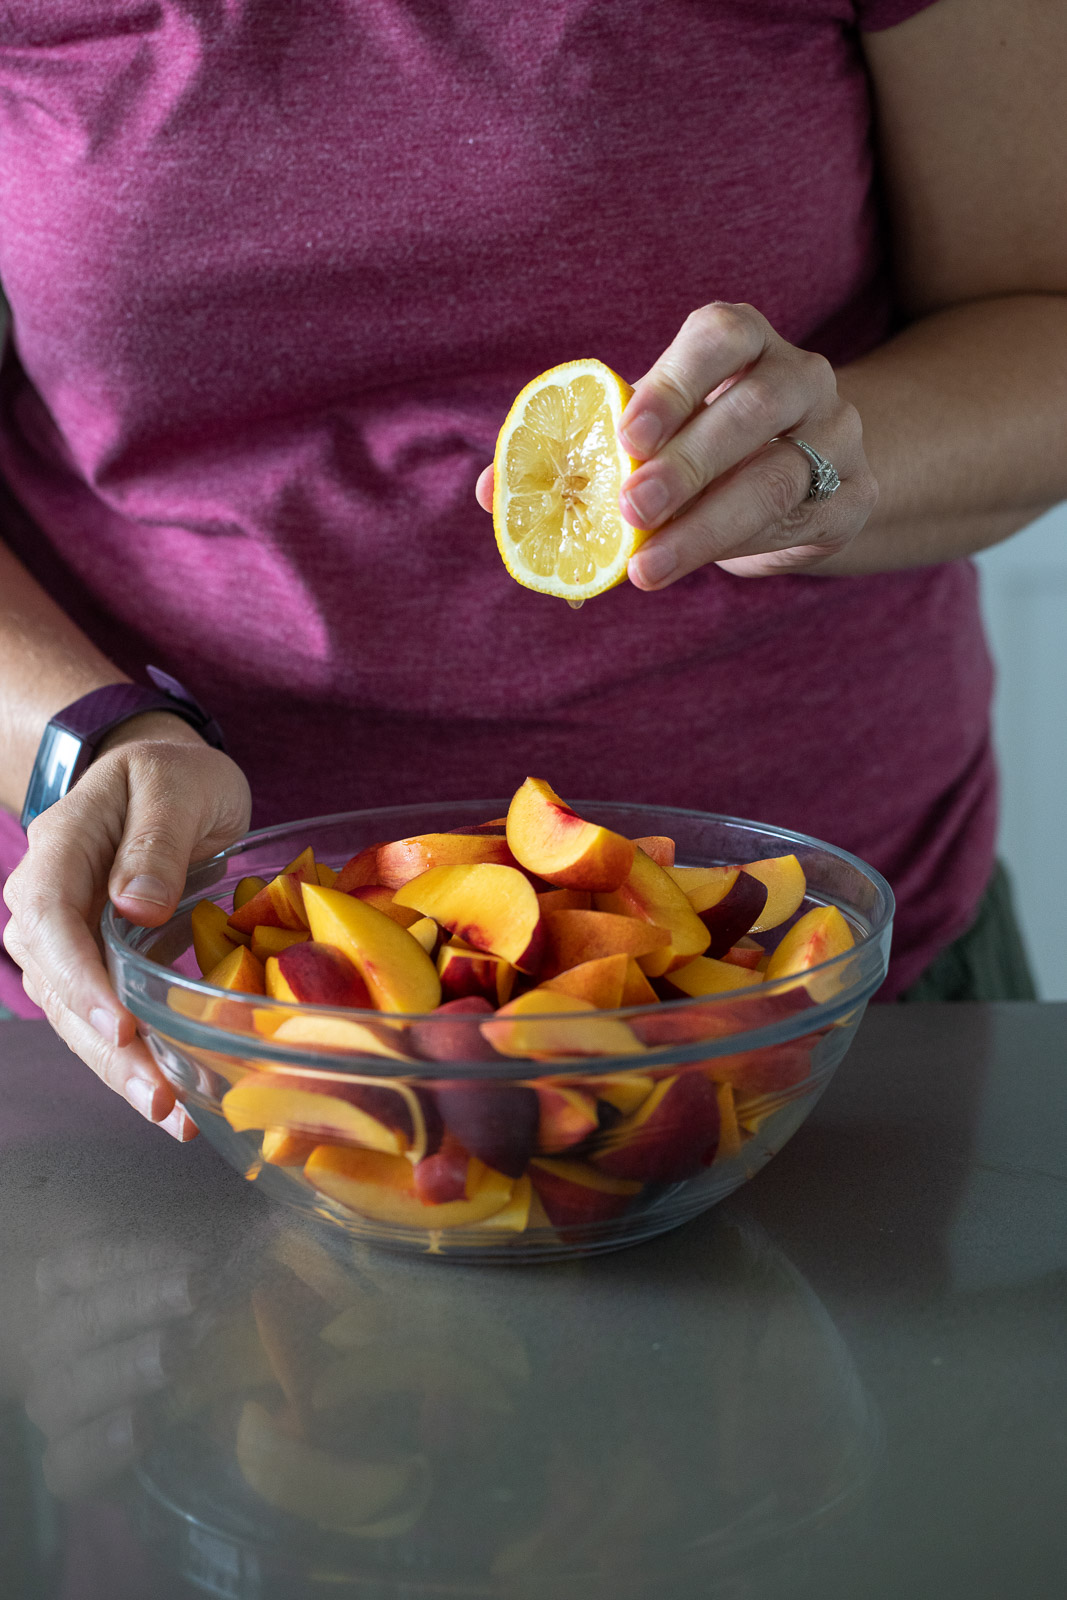 woman squeezing lemon juice onto nectarines in a glass bowl.